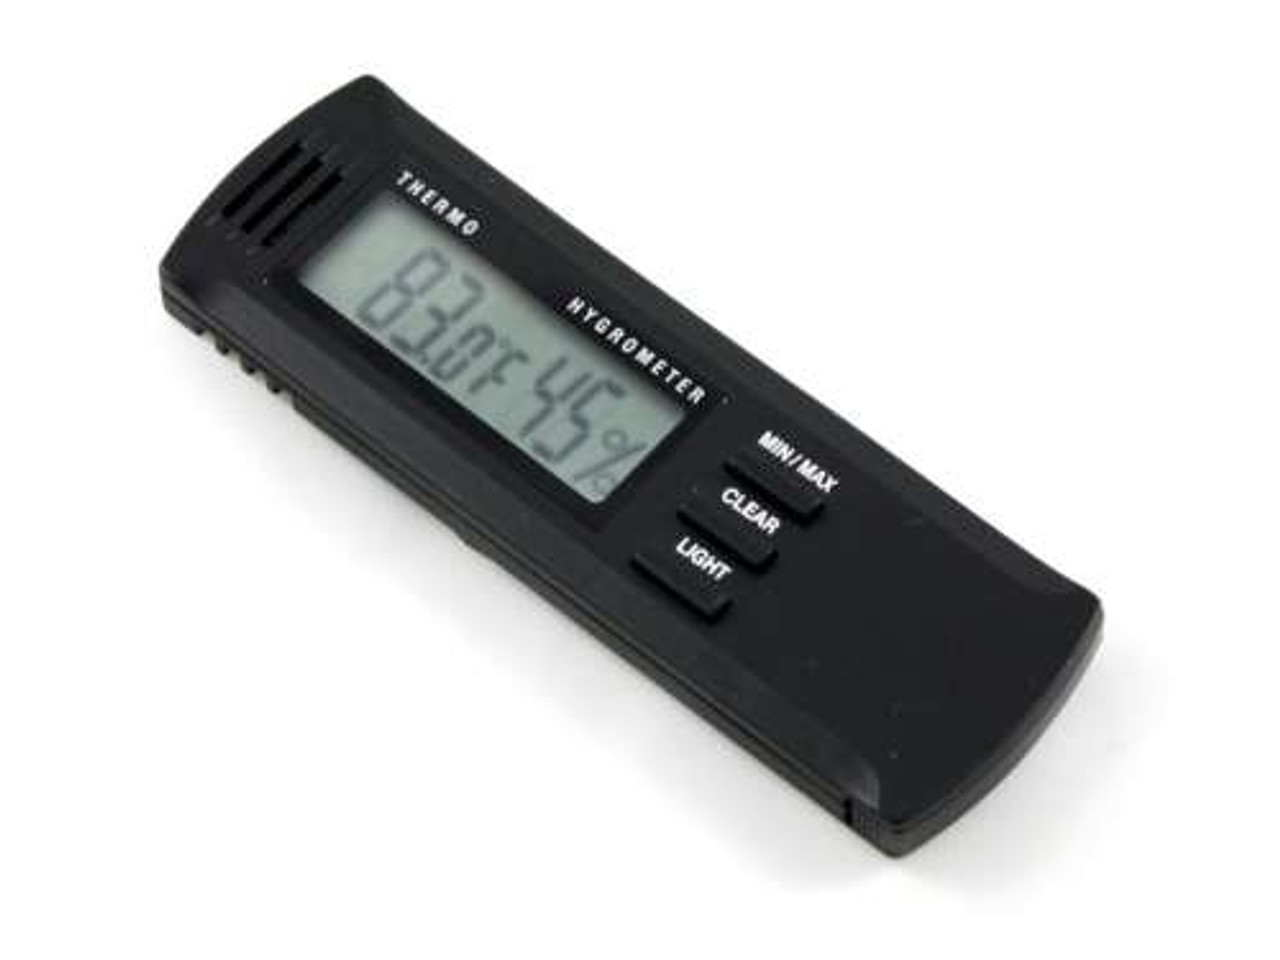 Lennox Digital Cigar Hygrometer with Thermometer